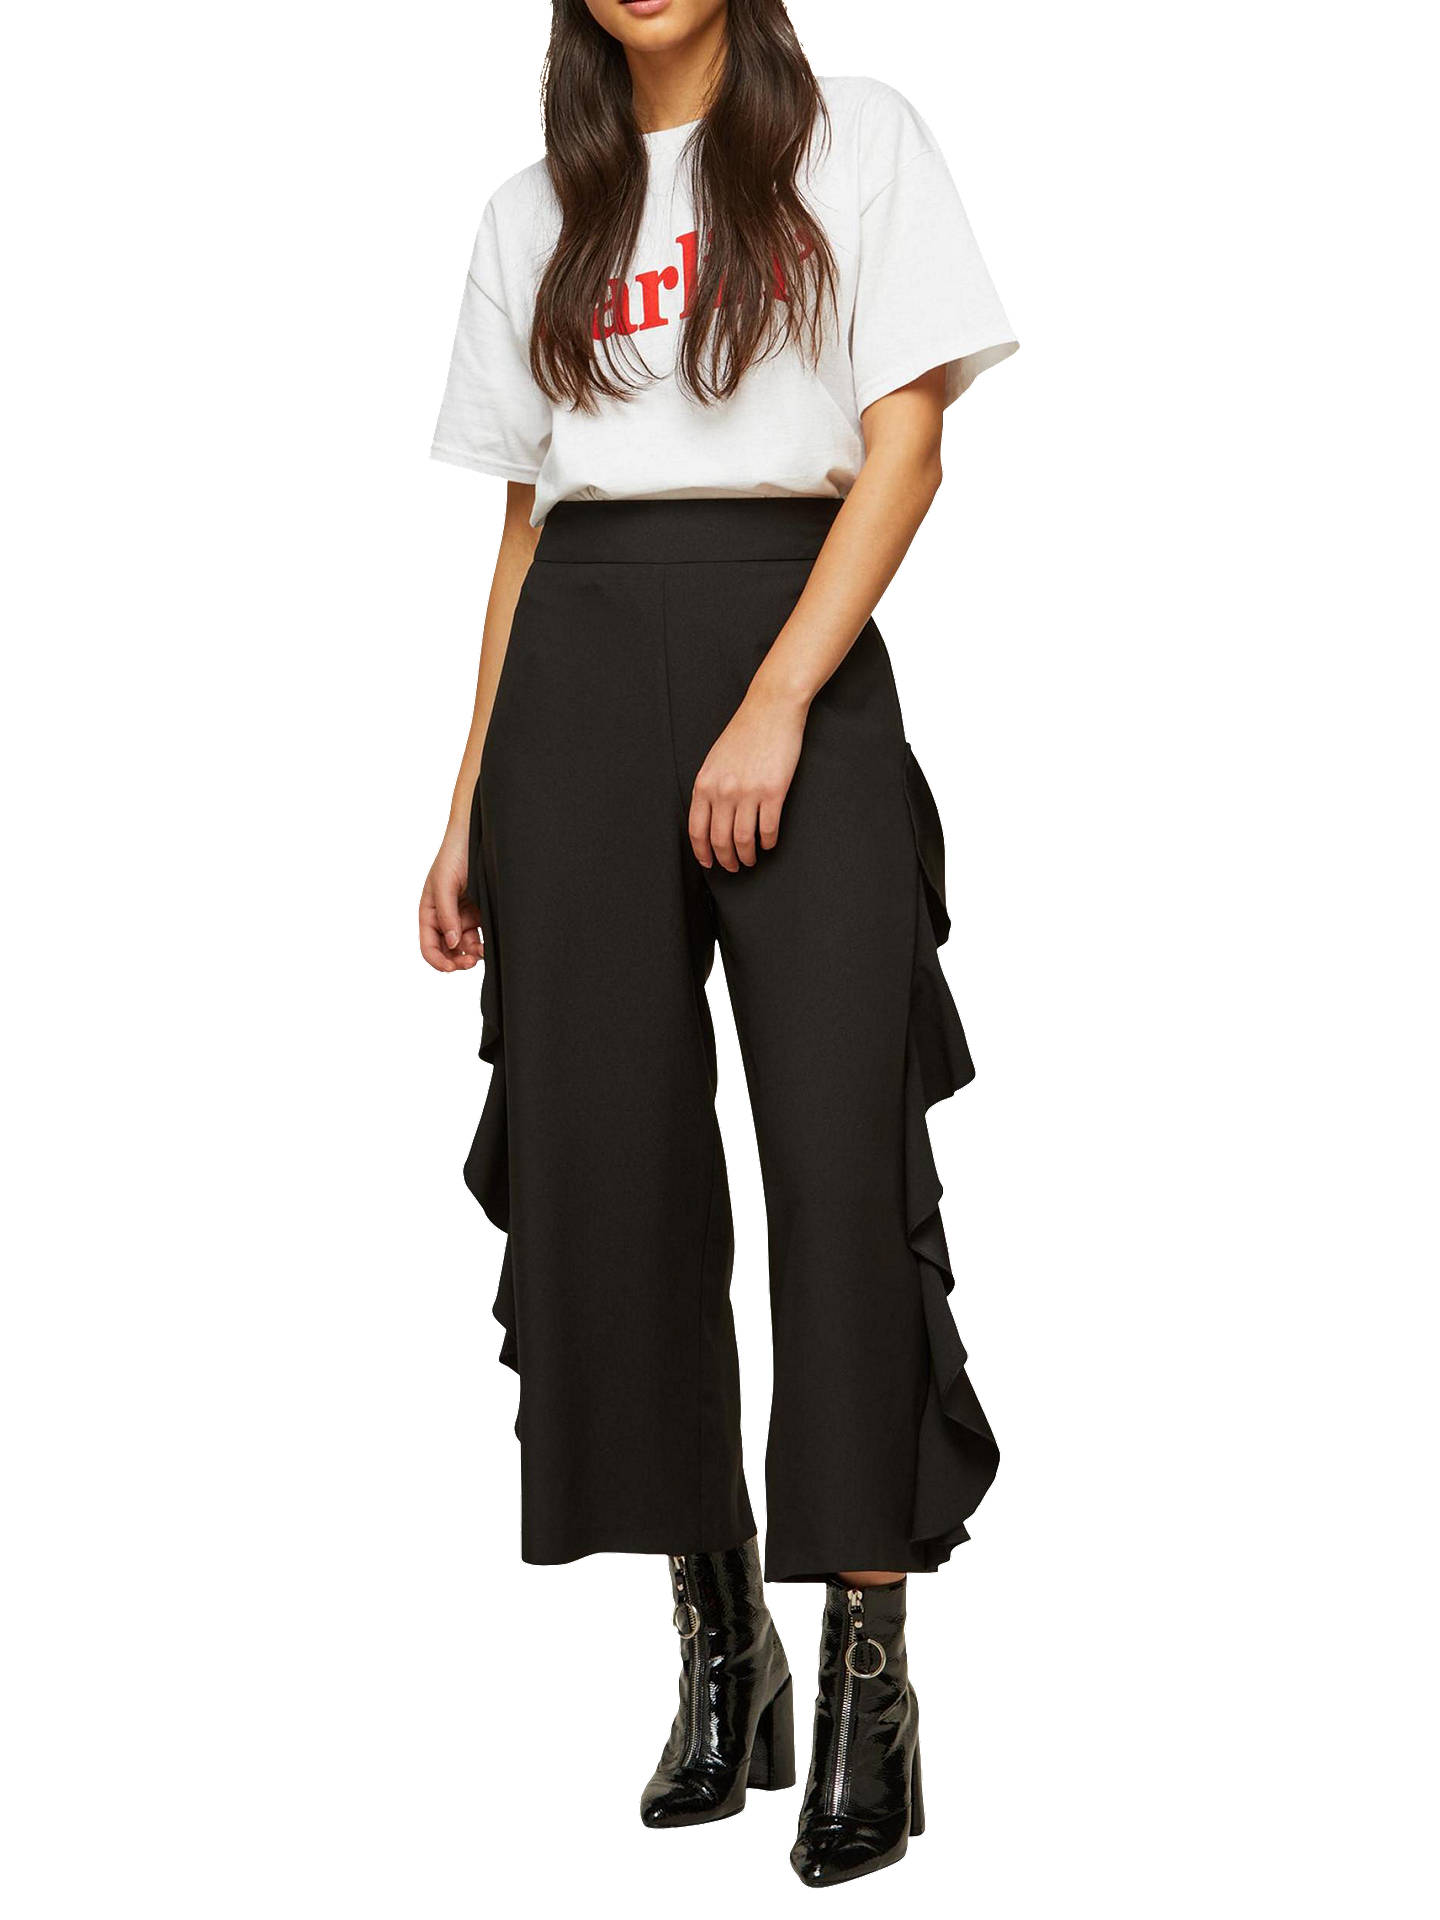 BuyMiss Selfridge Cropped Ruffle Trousers, Black, 6 Online at johnlewis.com